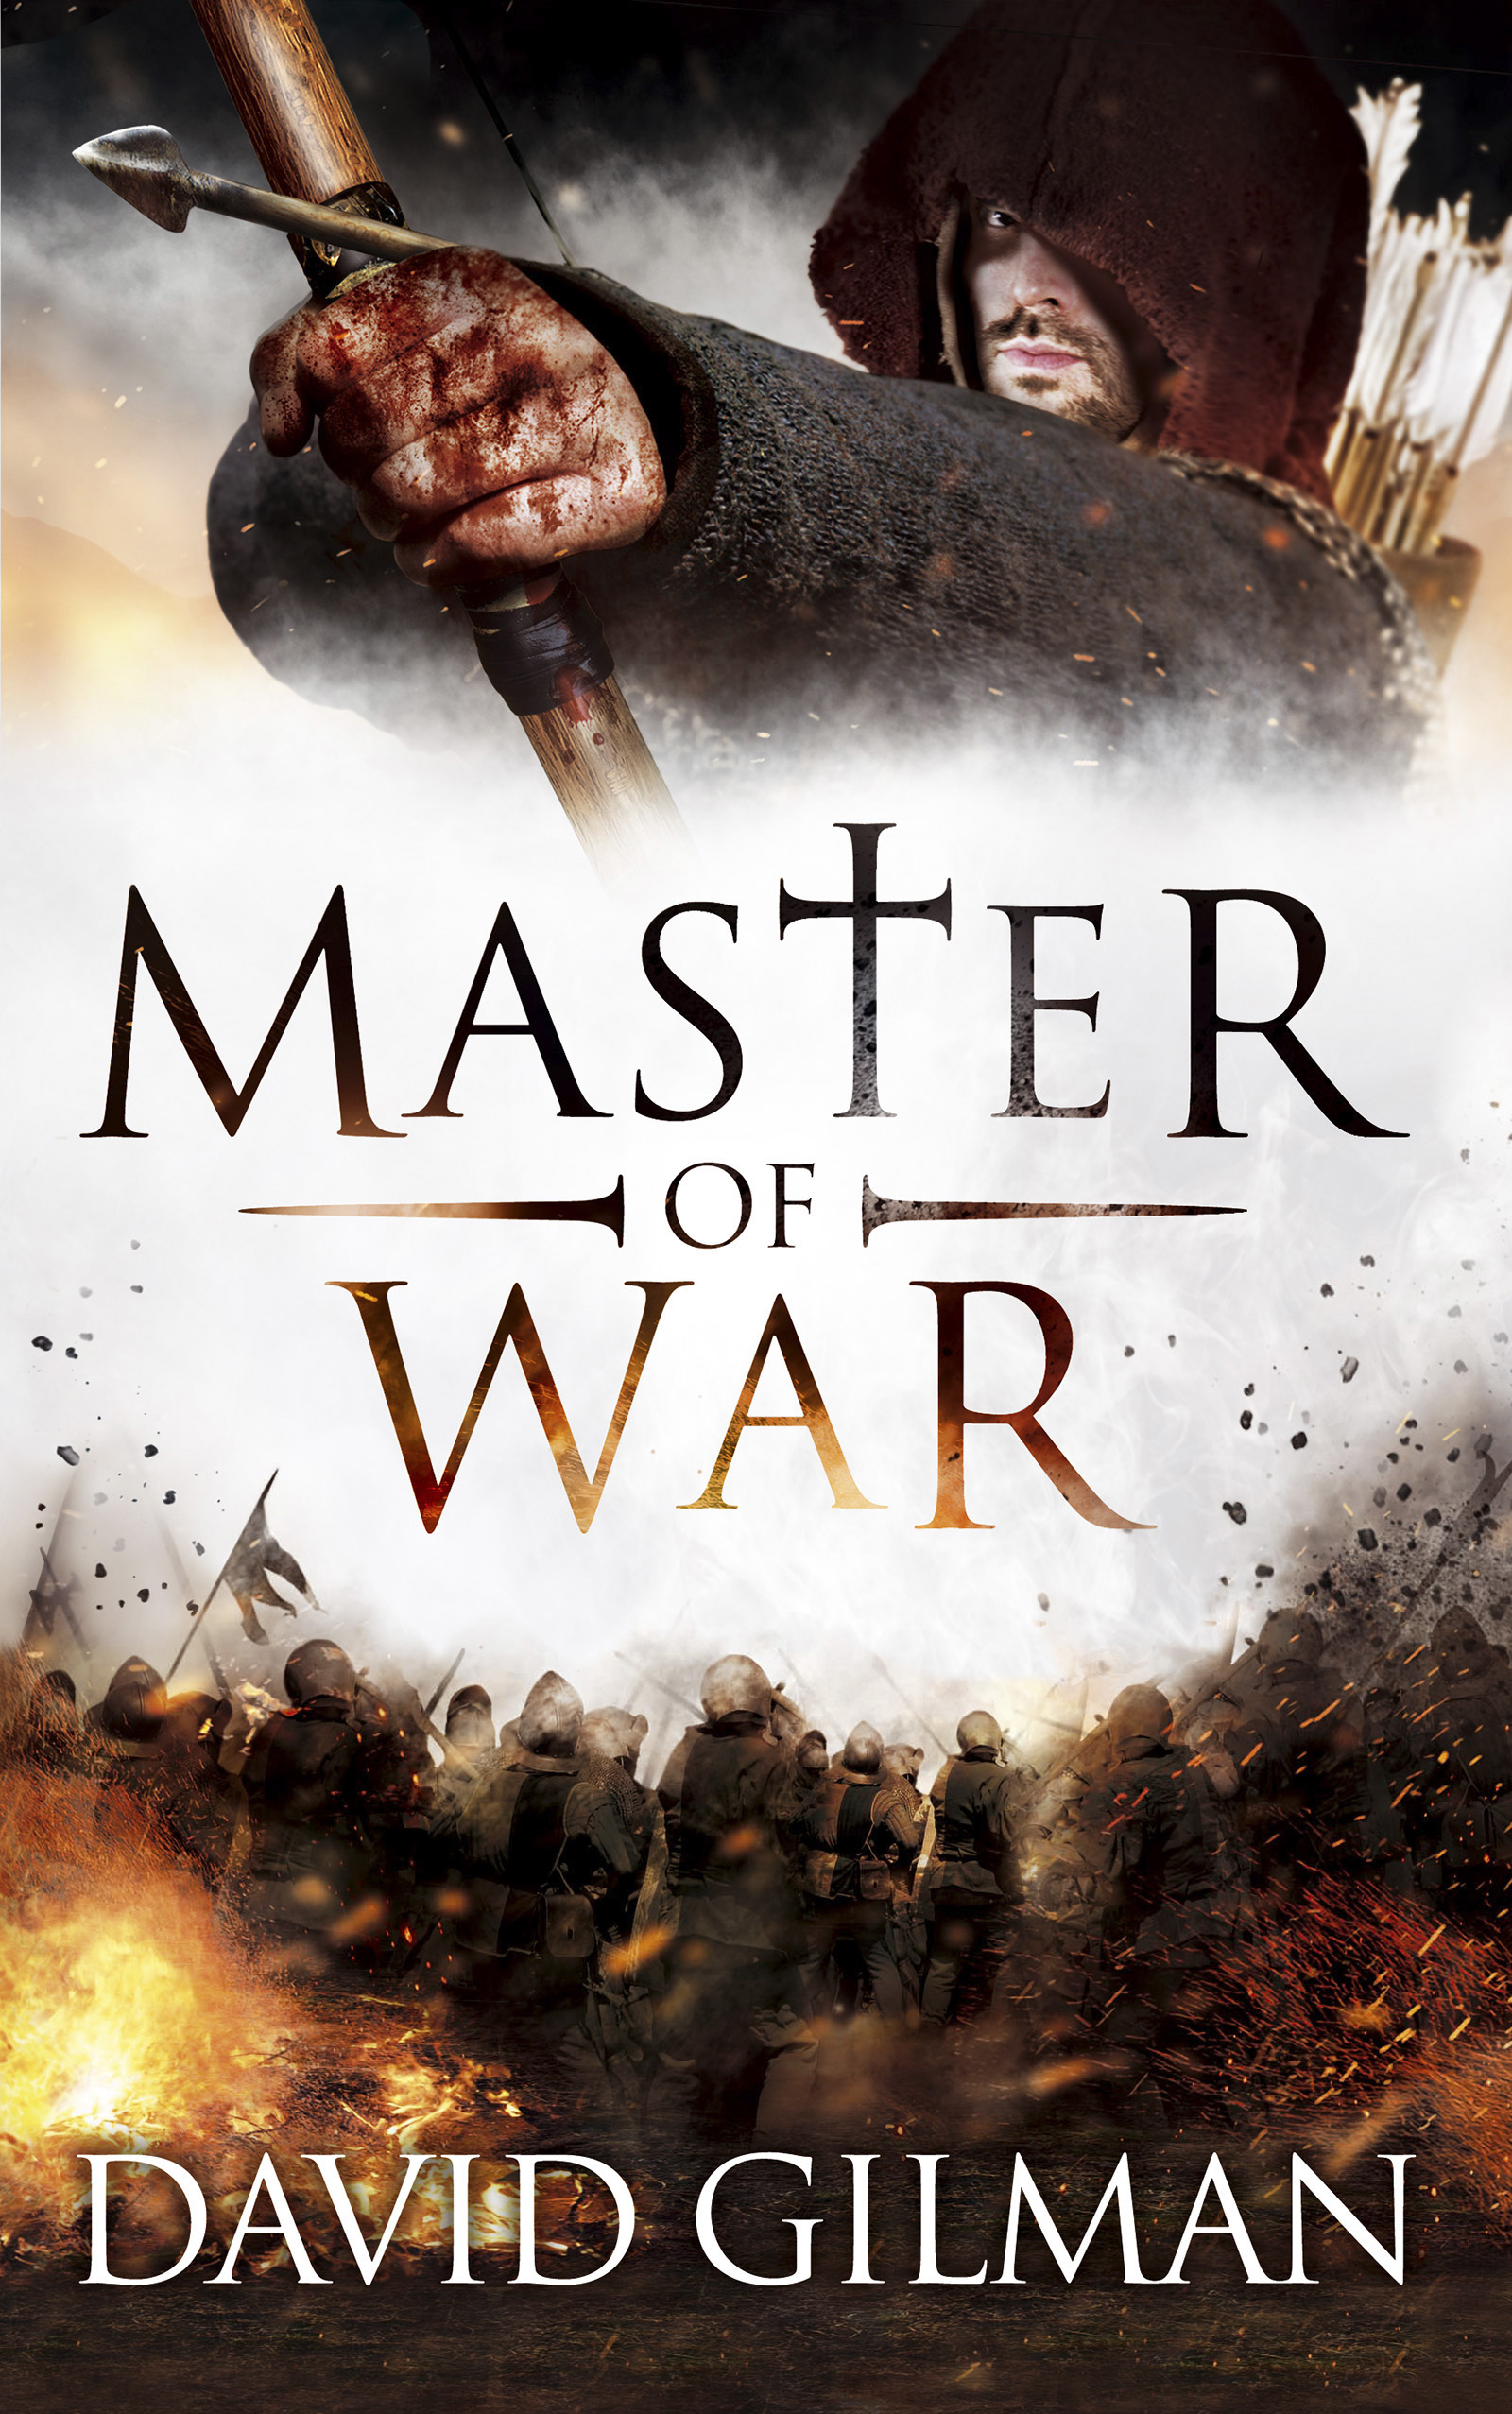 masters of wat Come you masters of war you that build all the guns you that build the death planes you that build the big bombs you that hide behind walls you that hide b.